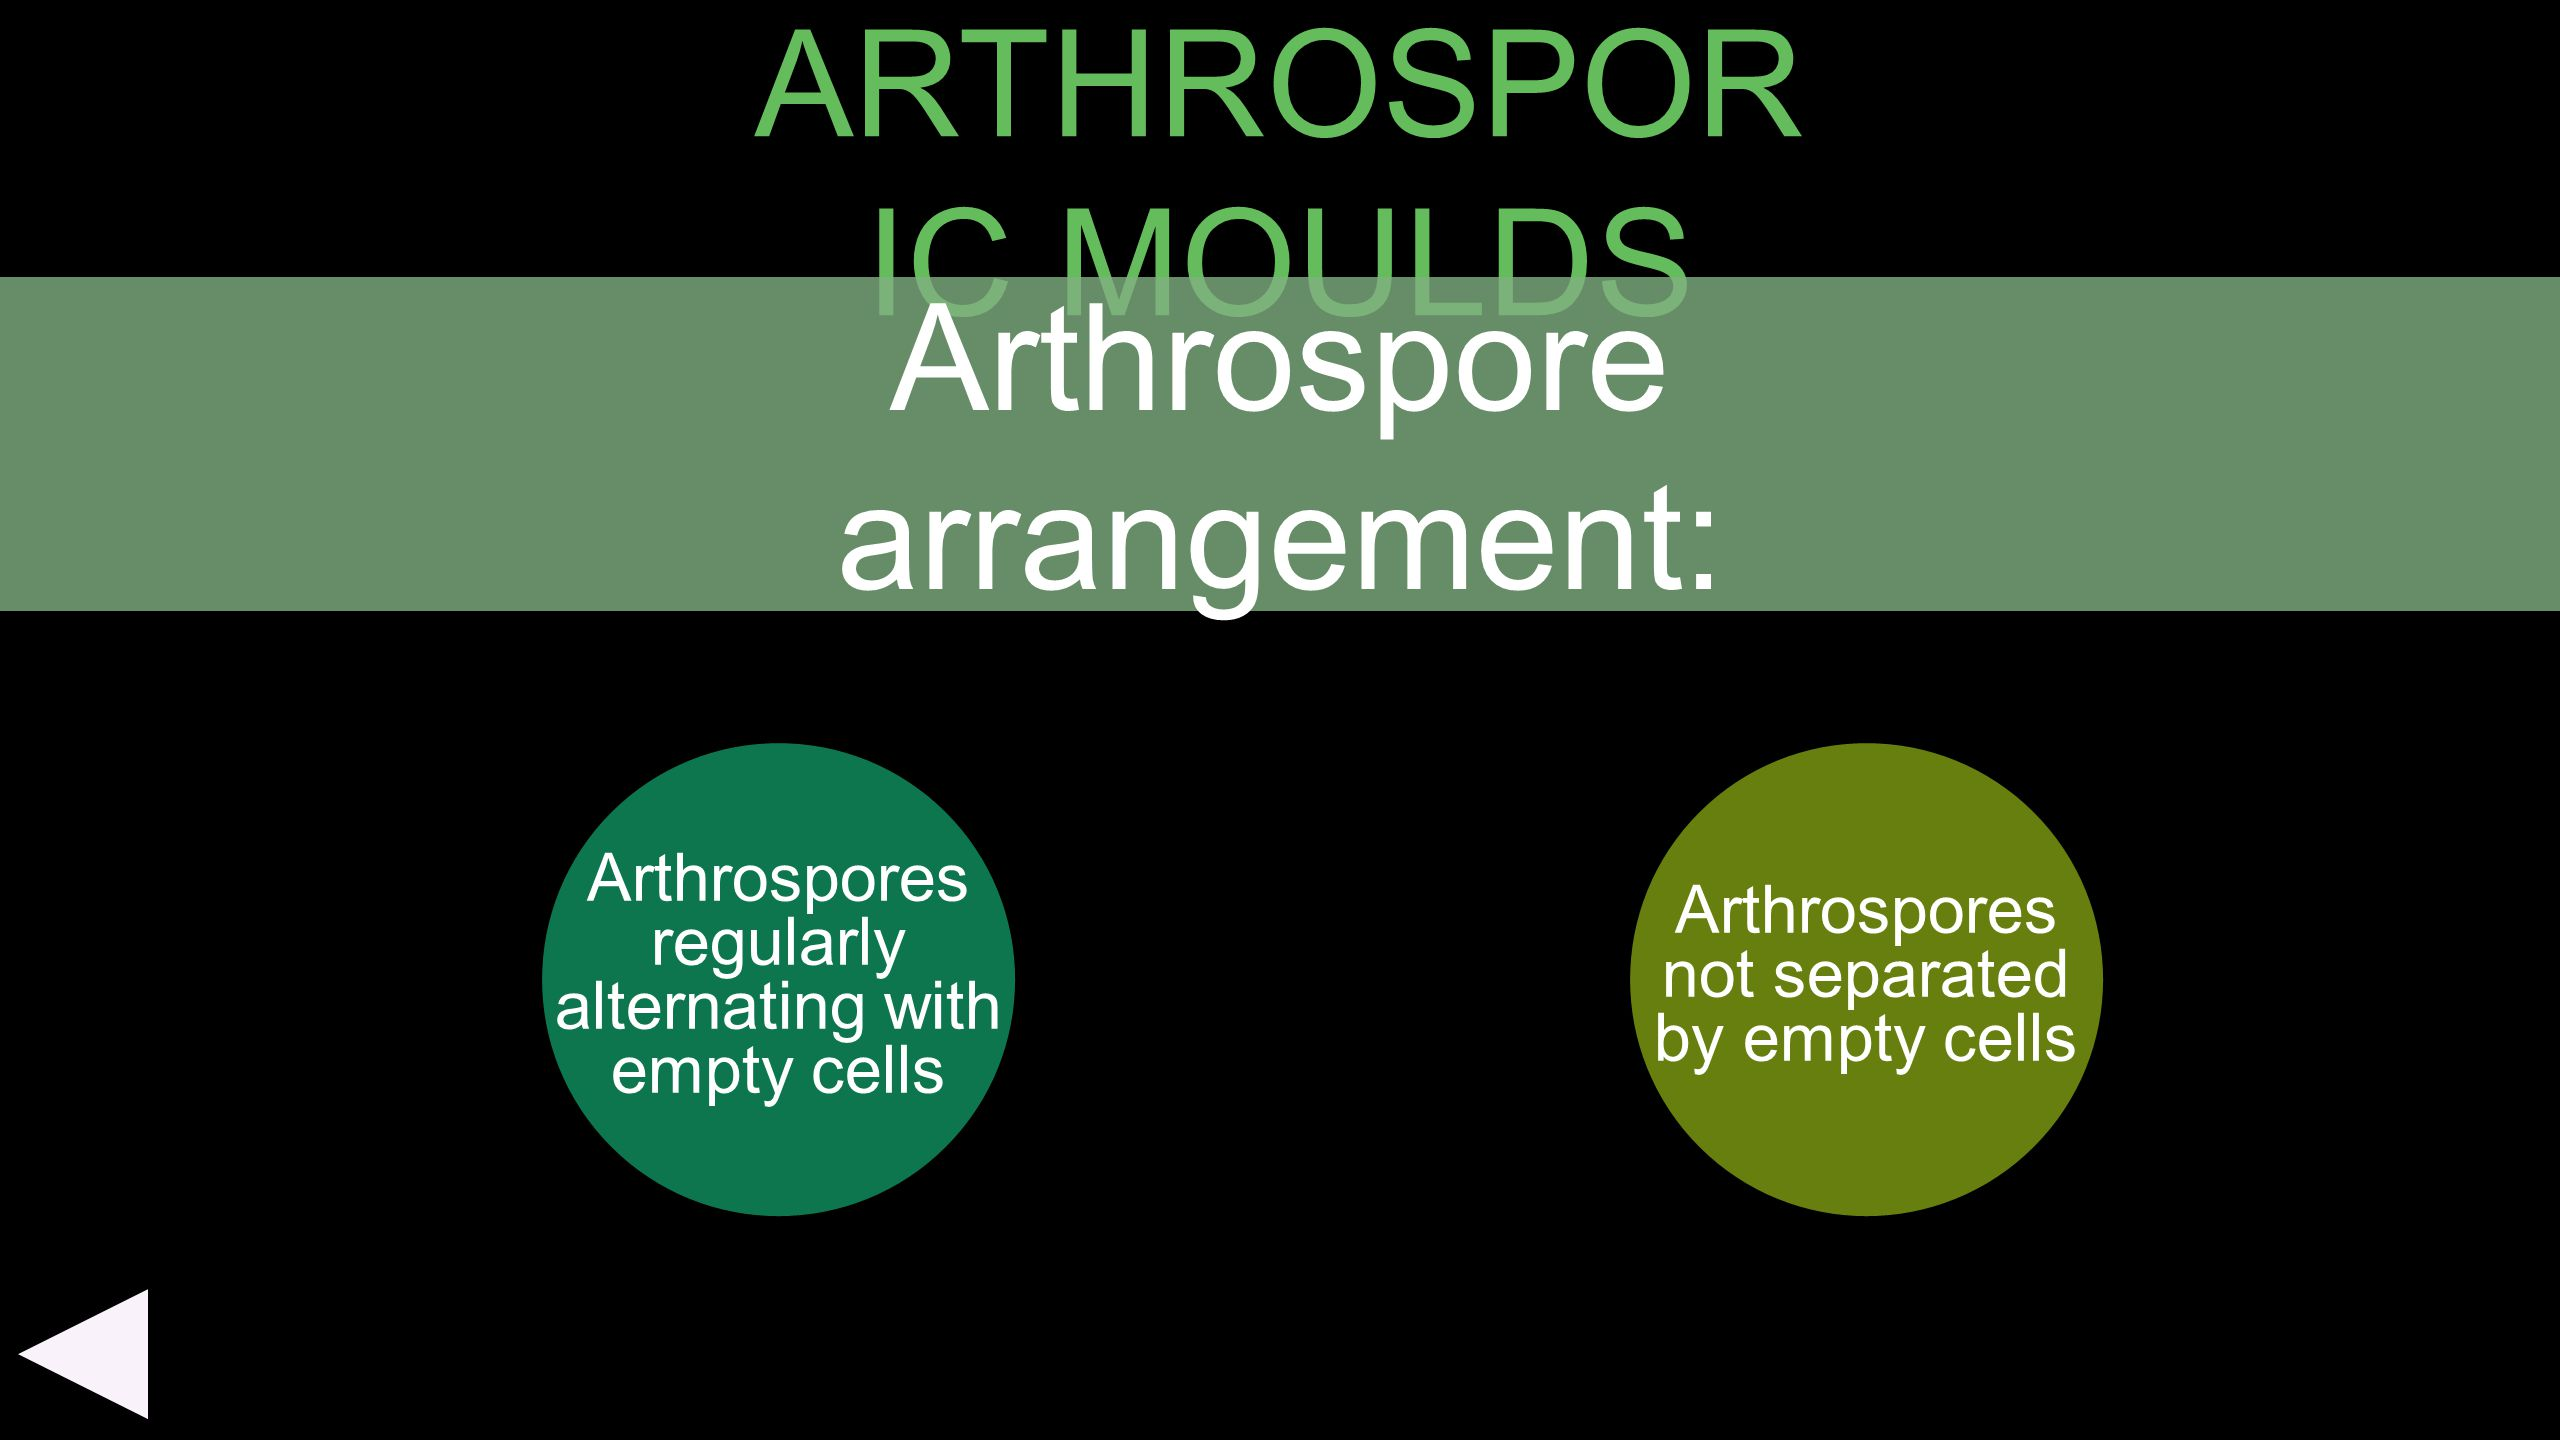 Arthrospore arrangement: